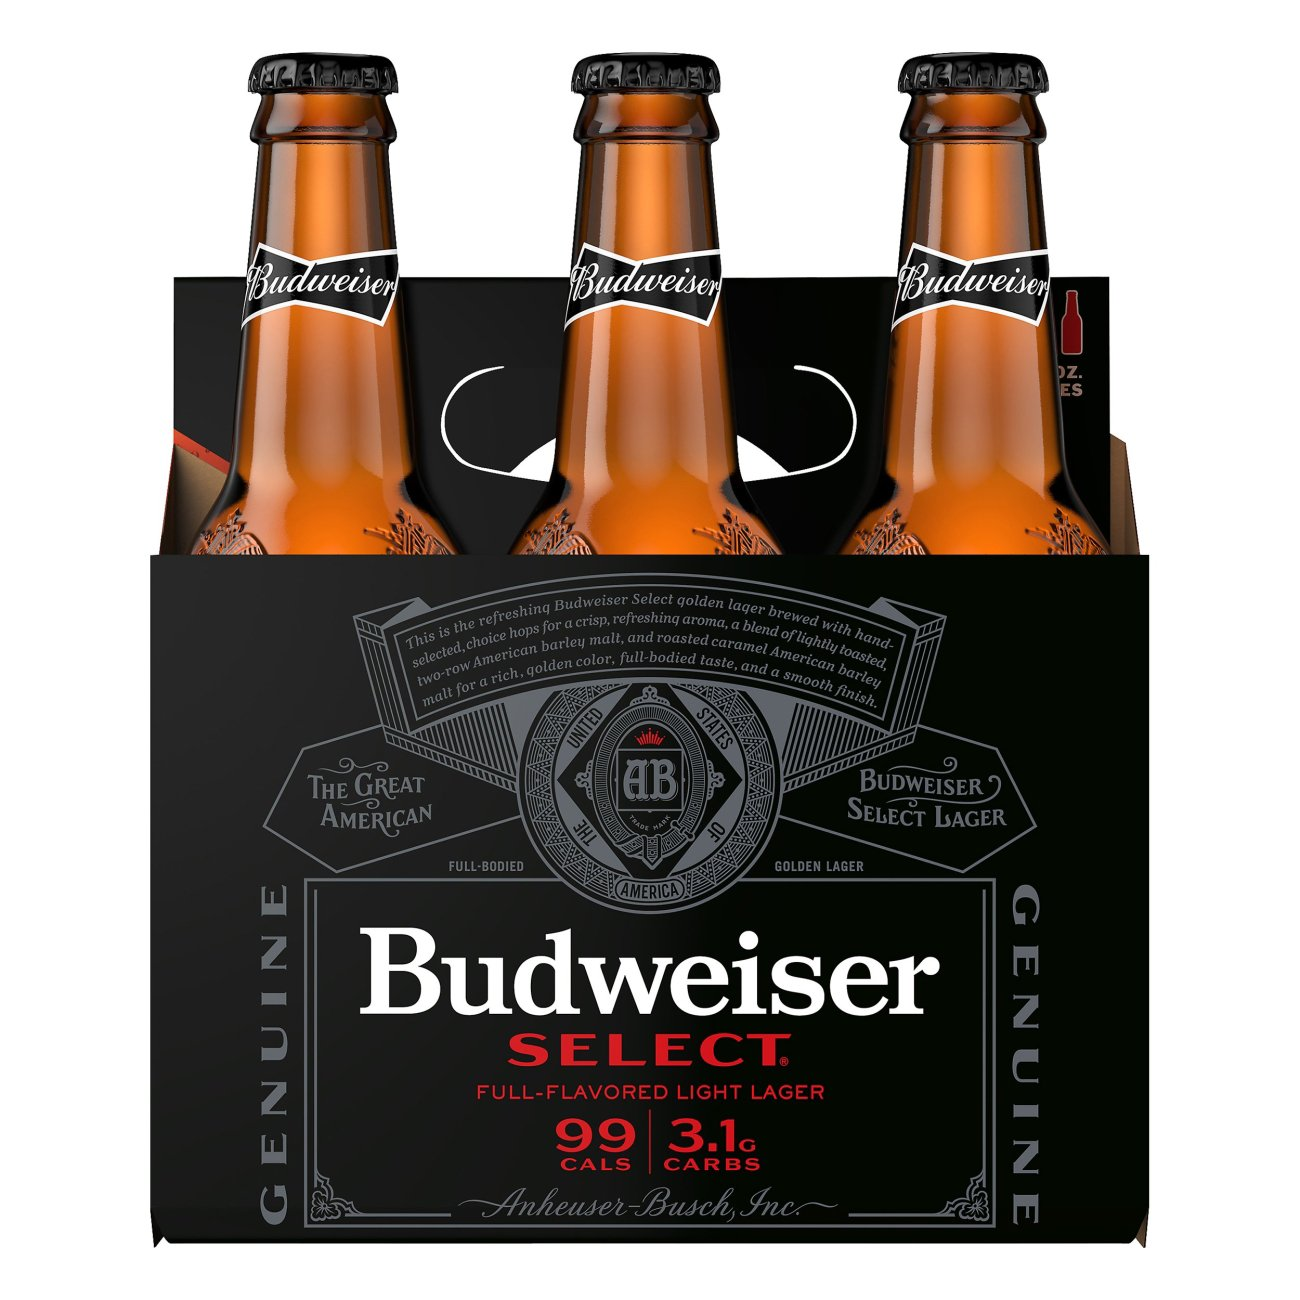 calories in a bottle of budweiser